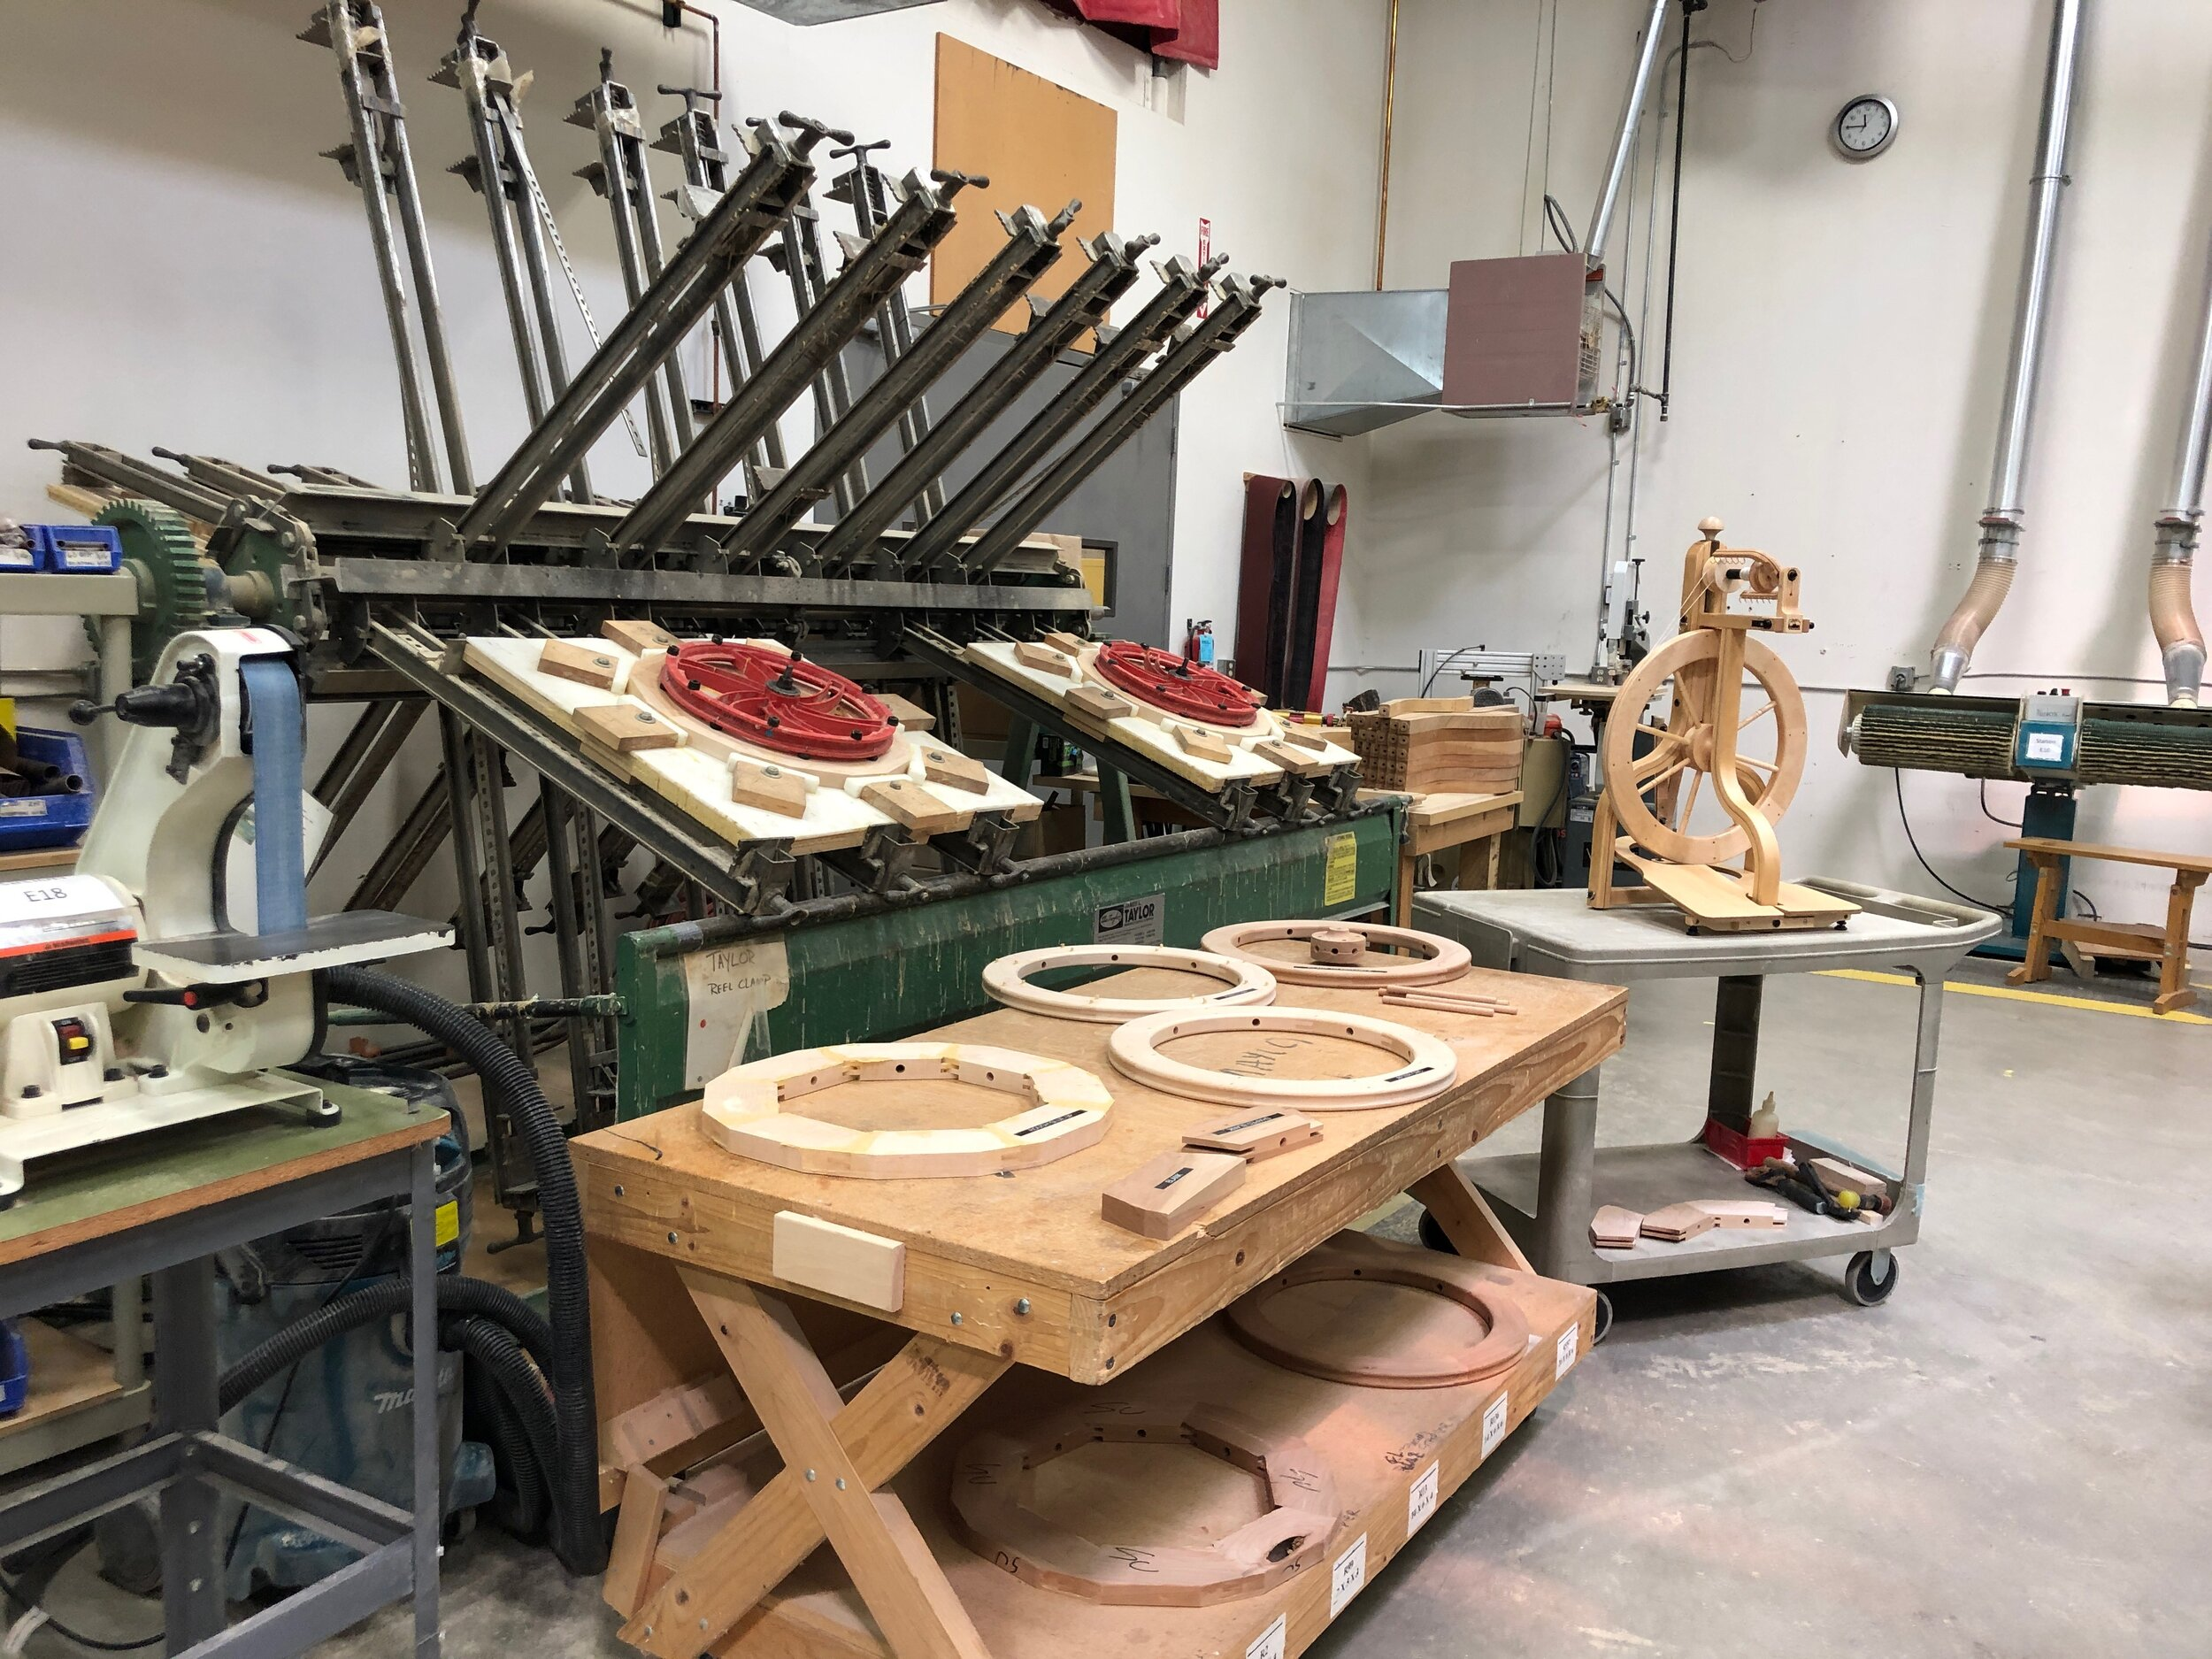 The machine used for making wooden wheels, a table showing wheels at various steps in the process, and a finished wheel on display.  Celebrating Schacht's 50th Anniversary || withwool.com  #schacht50years